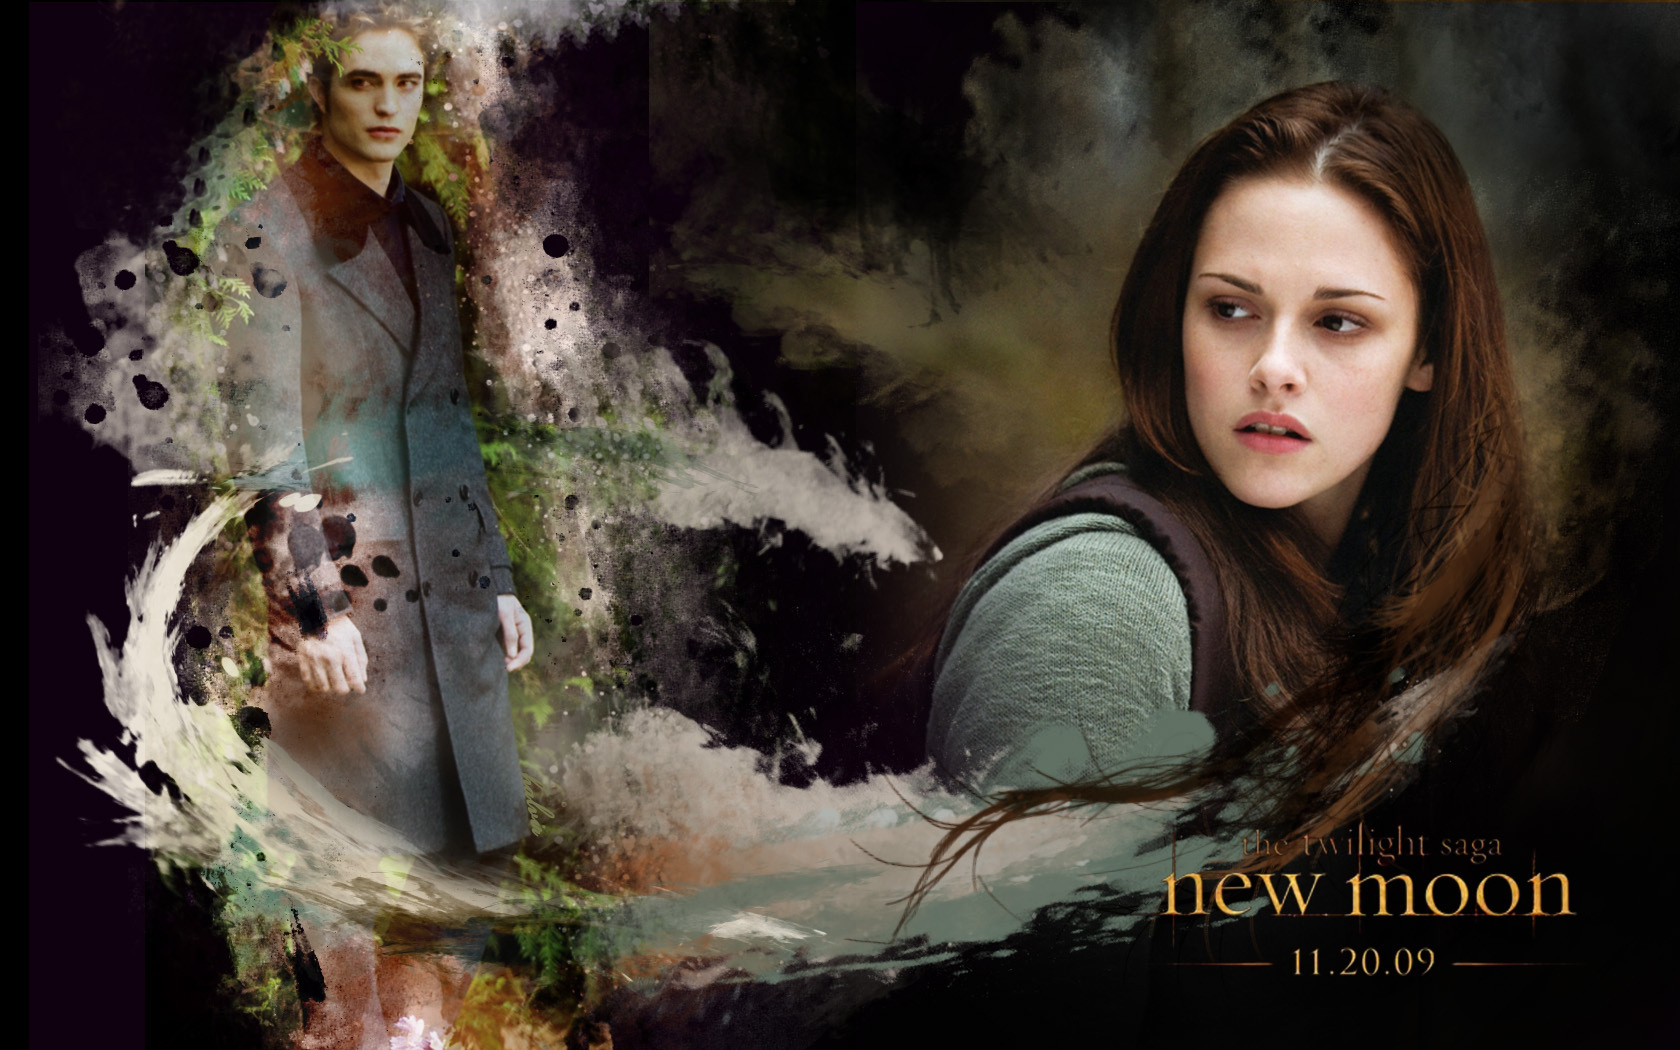 Edward Amp Bella New Moon Wallpaper Twilight Series